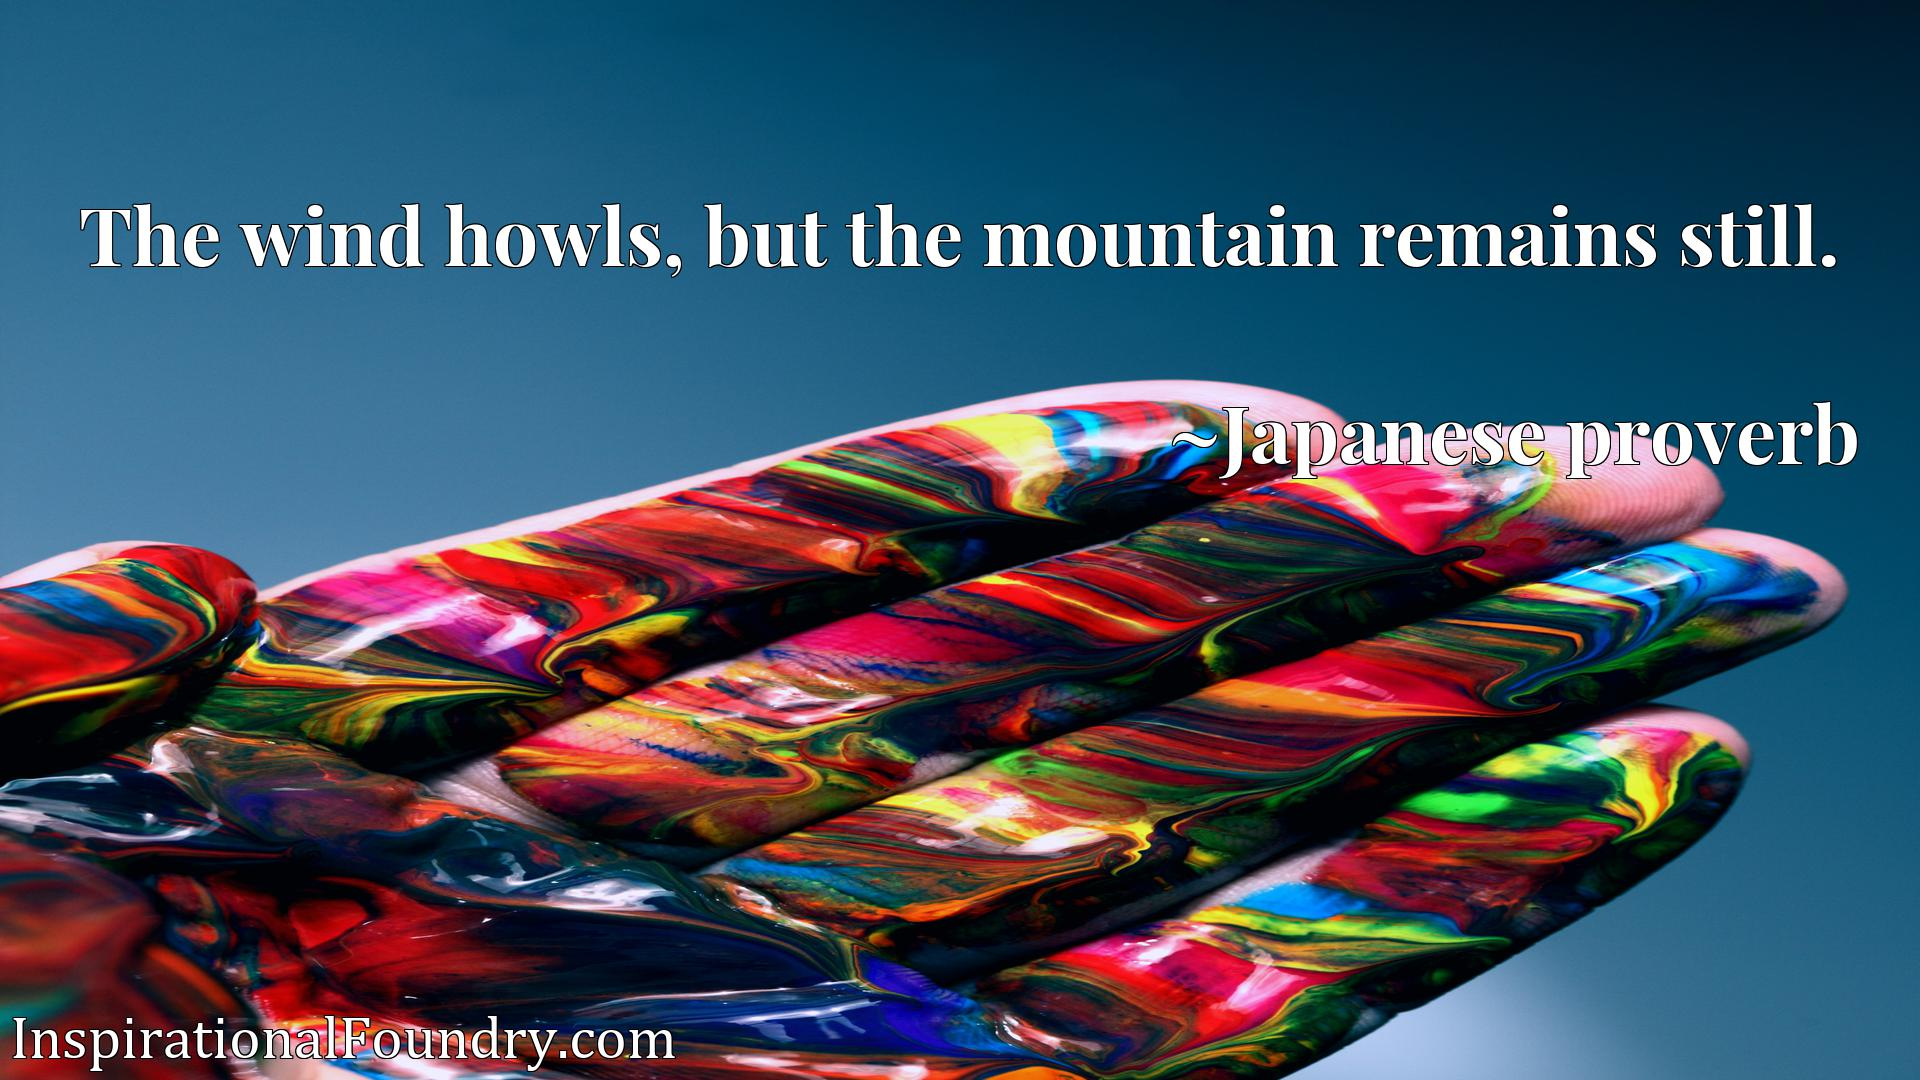 The wind howls, but the mountain remains still.